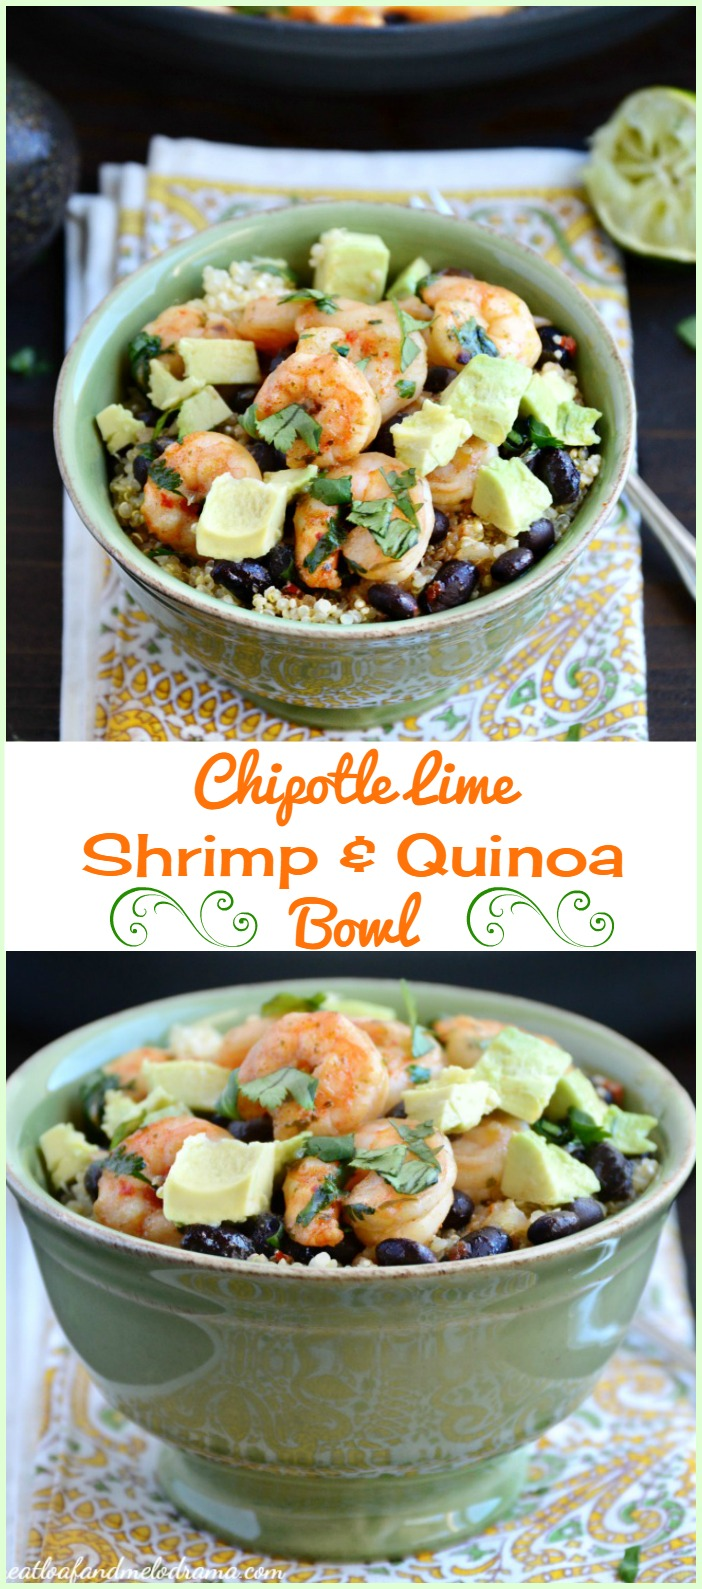 Chipotle Lime Shrimp and Quinoa Bowl - Meatloaf and Melodrama